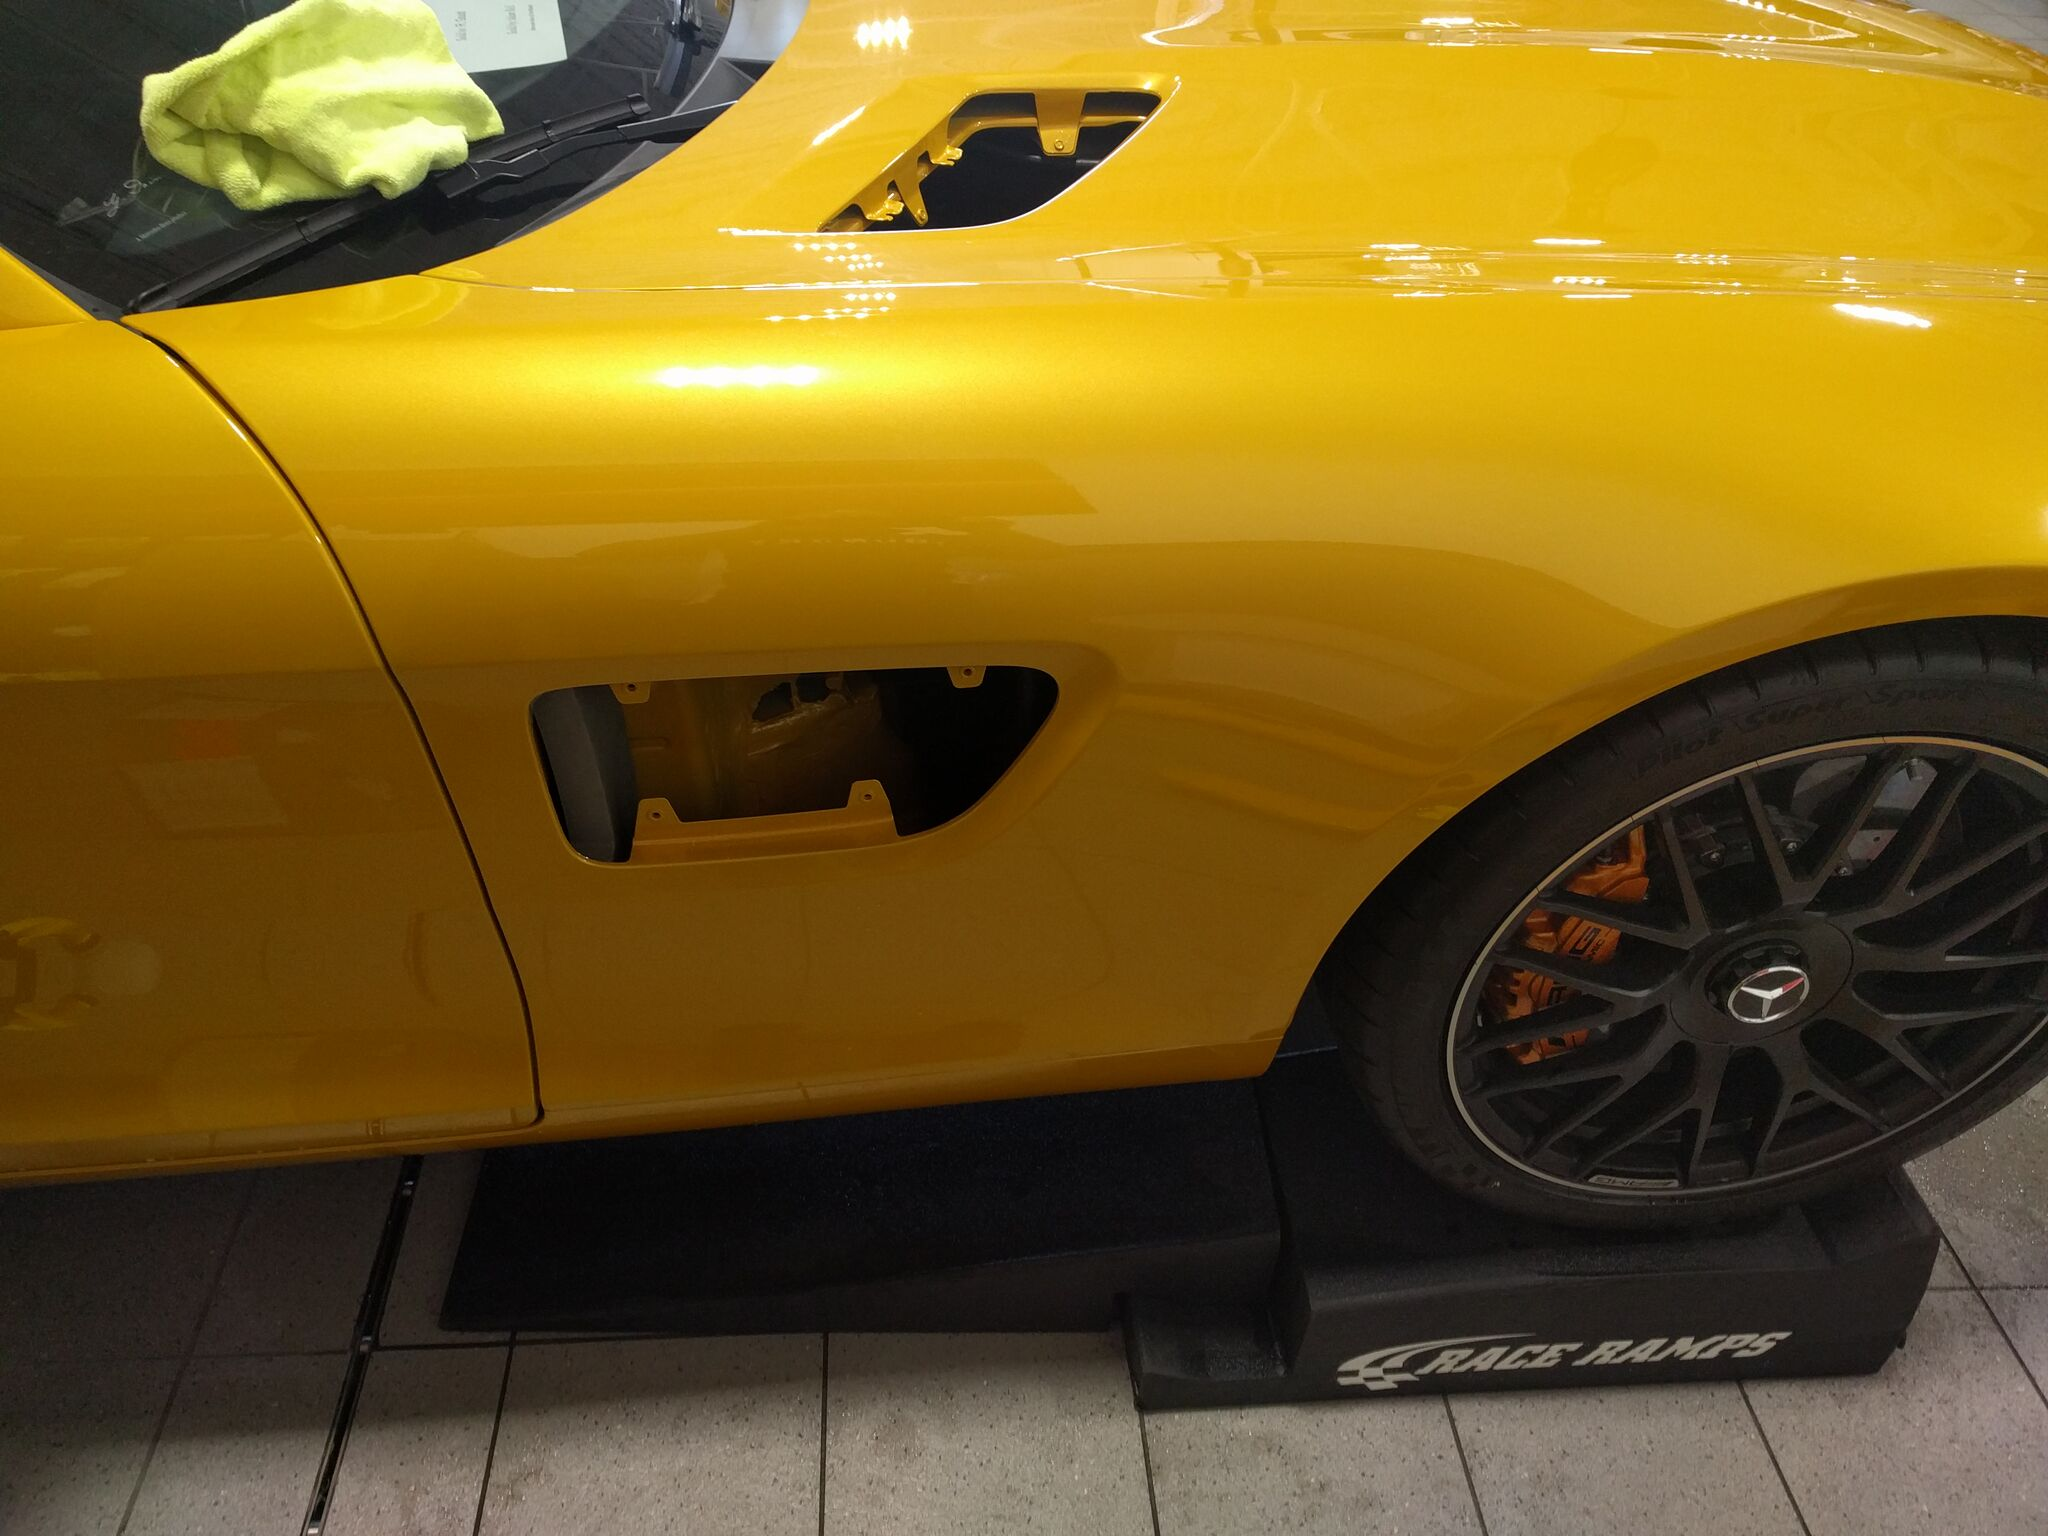 Mercedes AMG GTS gets Xpel paint protection 2